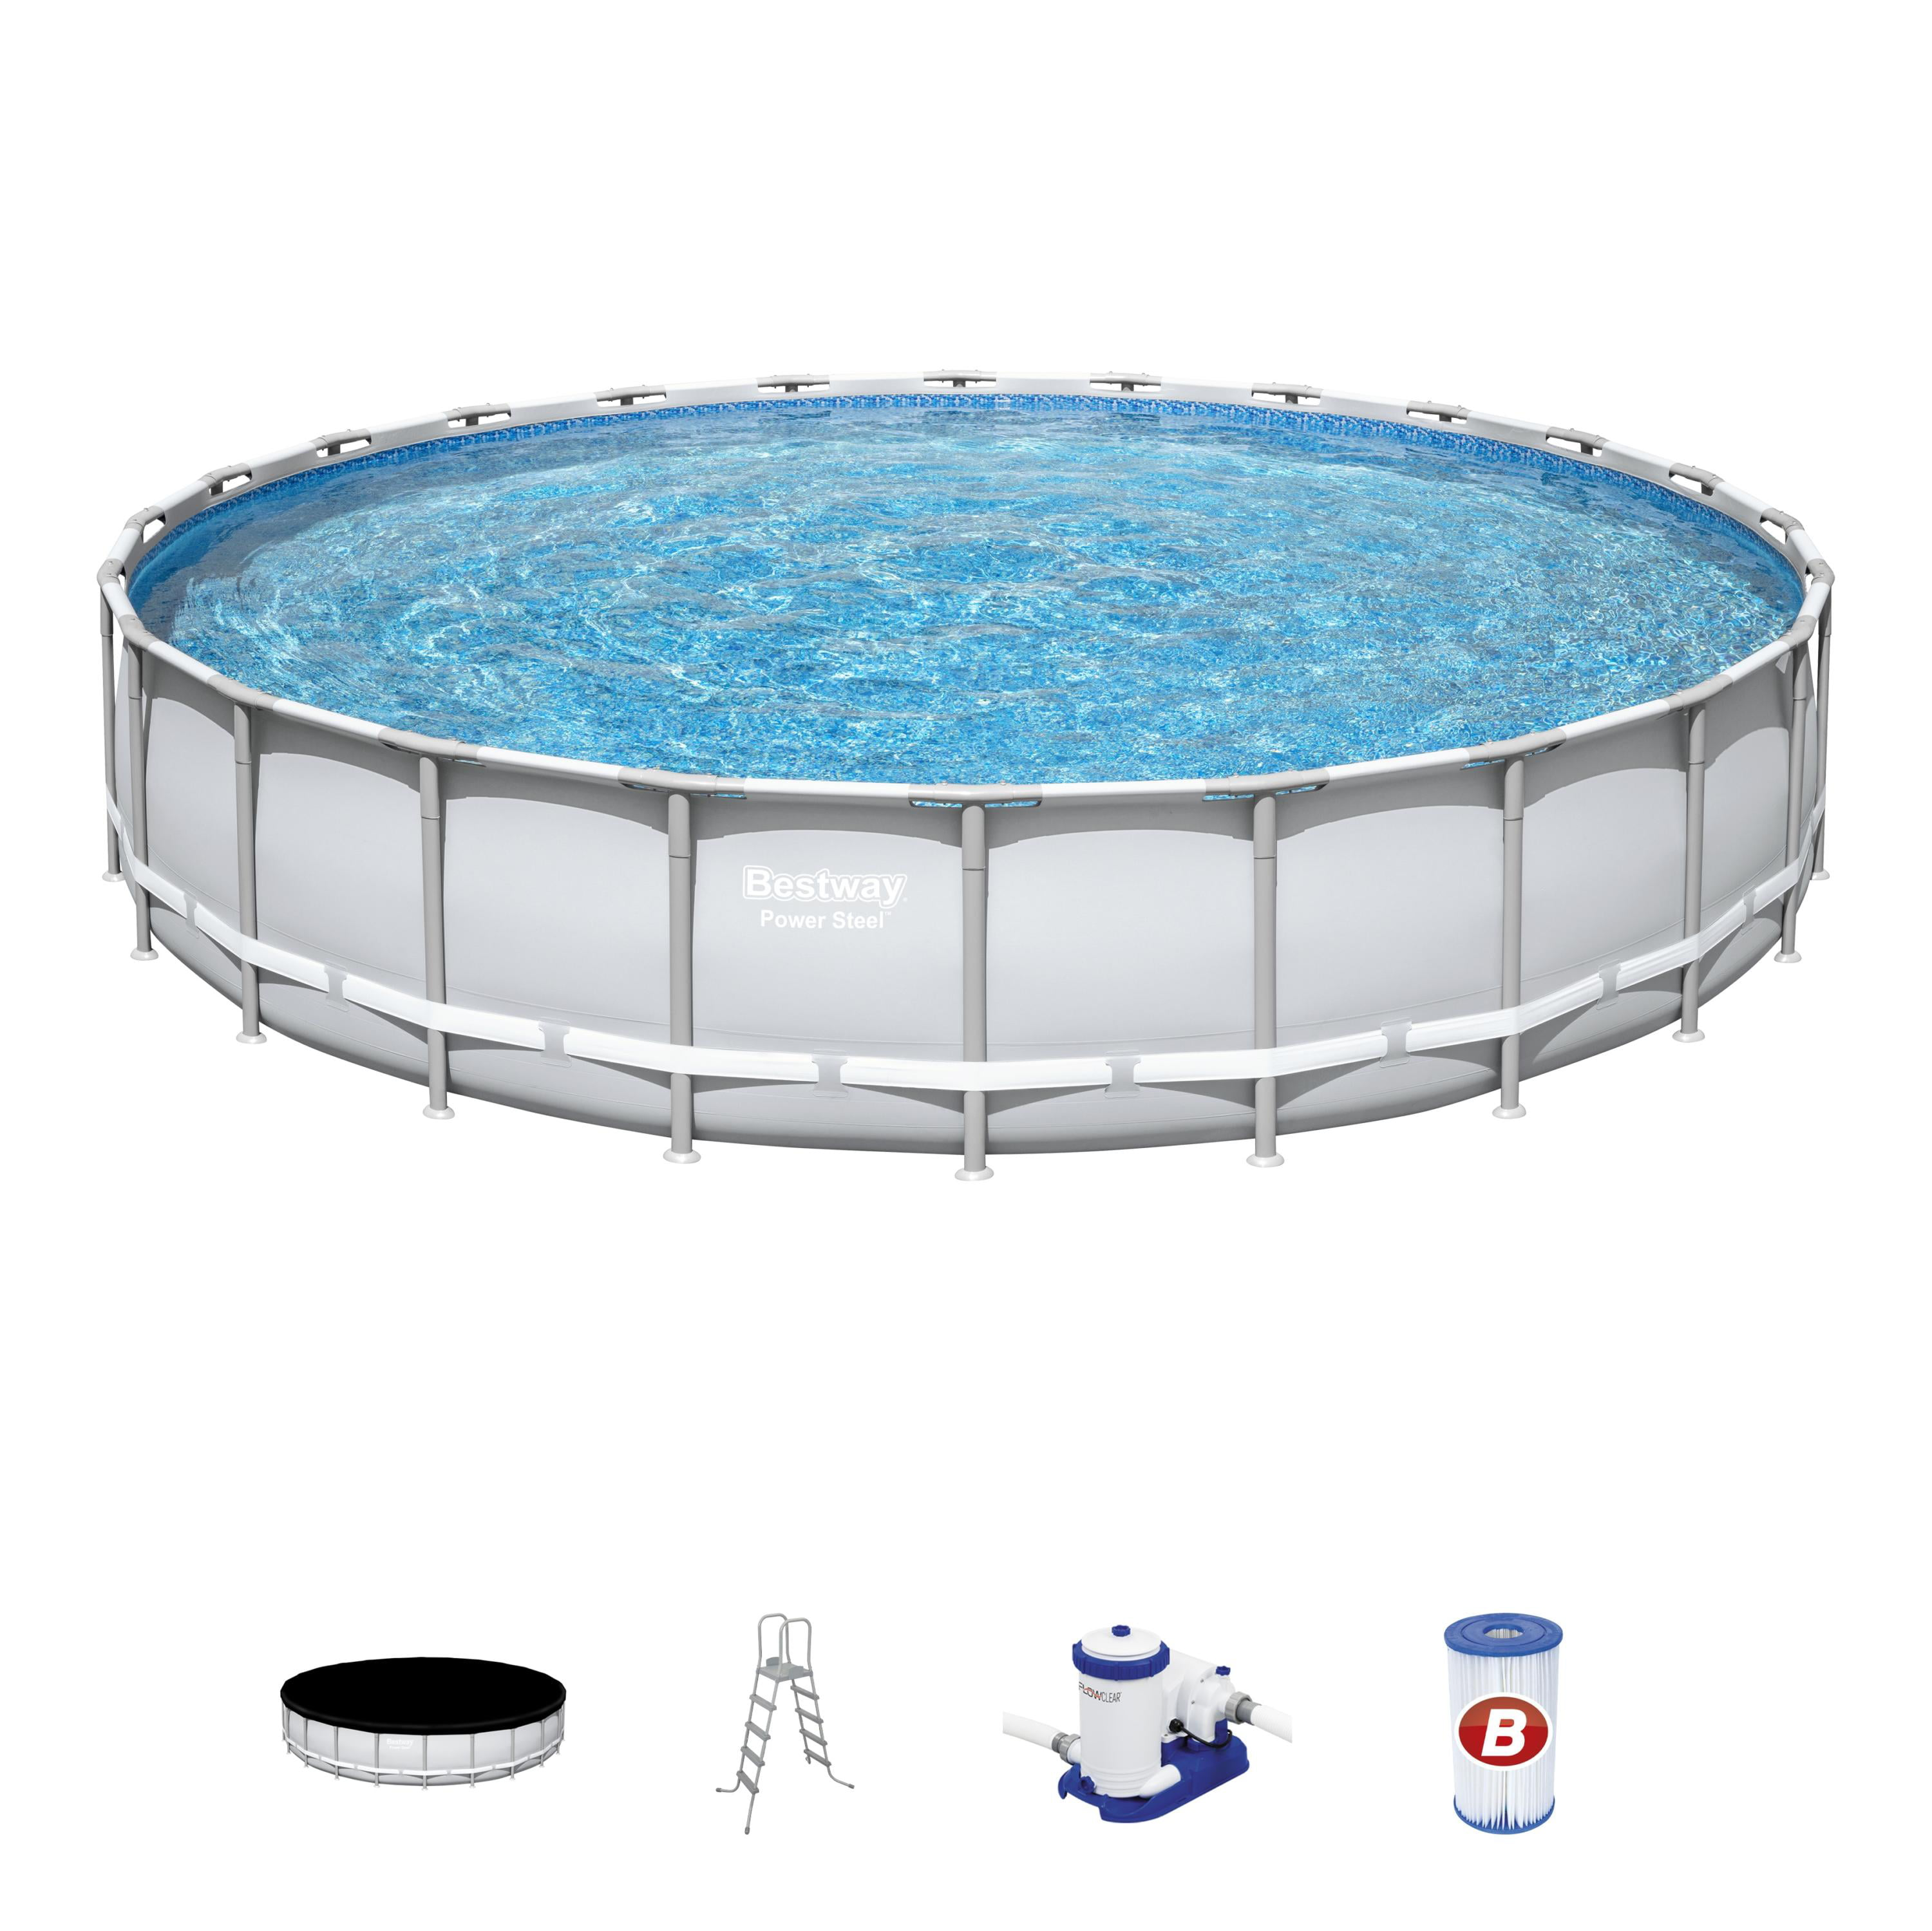 Bestway Power Steel 24 X 52 Frame Swimming Pool Set With Pump Ladder And Cover Walmart Com Walmart Com